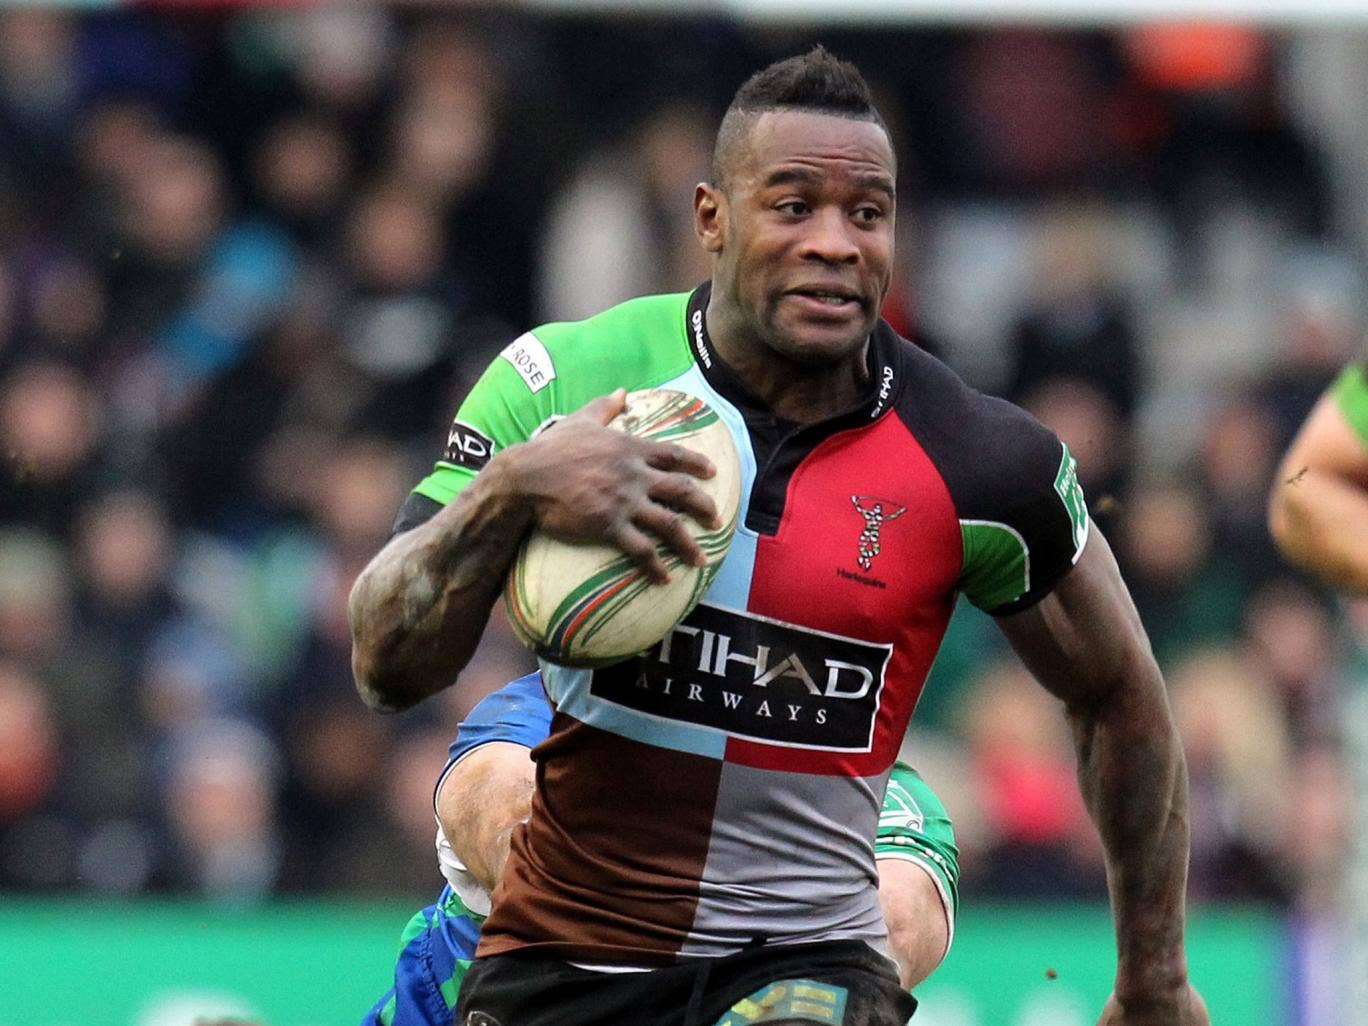 Saxon angle: Ugo Moyne, demoted by England this week, scores a try